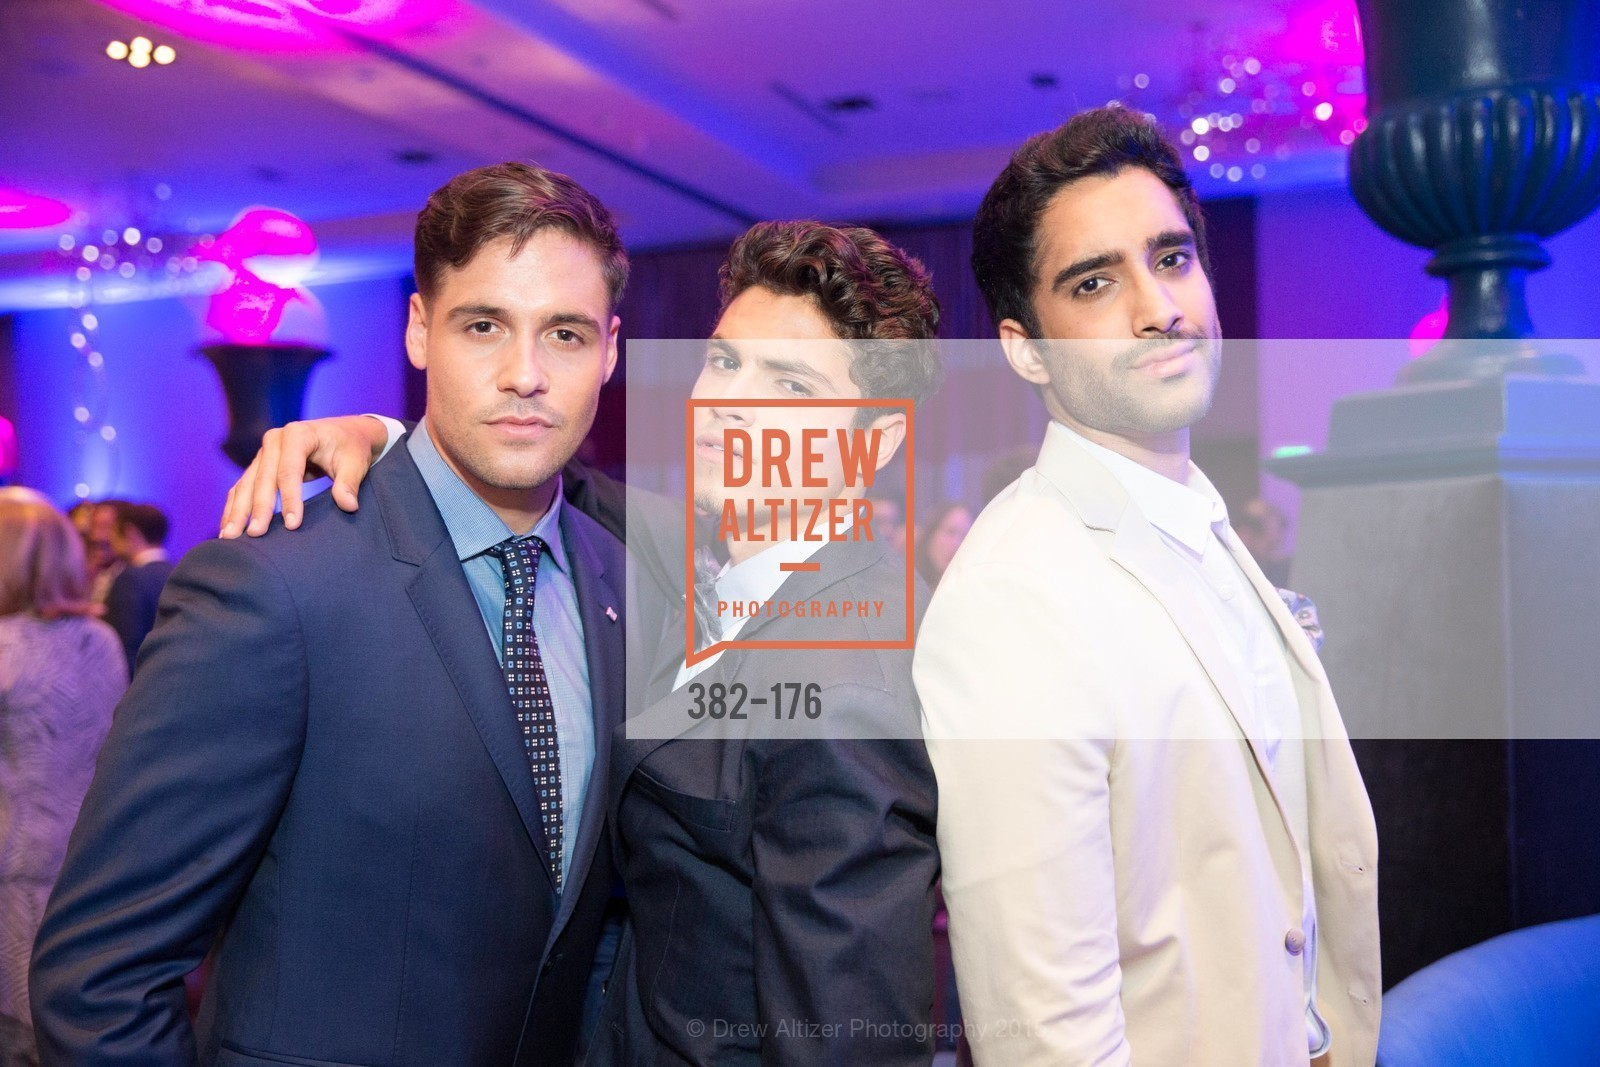 Blake Mason, Brian Brigantti, Sukh Man, VIP Pride Celebration 2015, St. Regis, June 18th, 2015,Drew Altizer, Drew Altizer Photography, full-service agency, private events, San Francisco photographer, photographer california